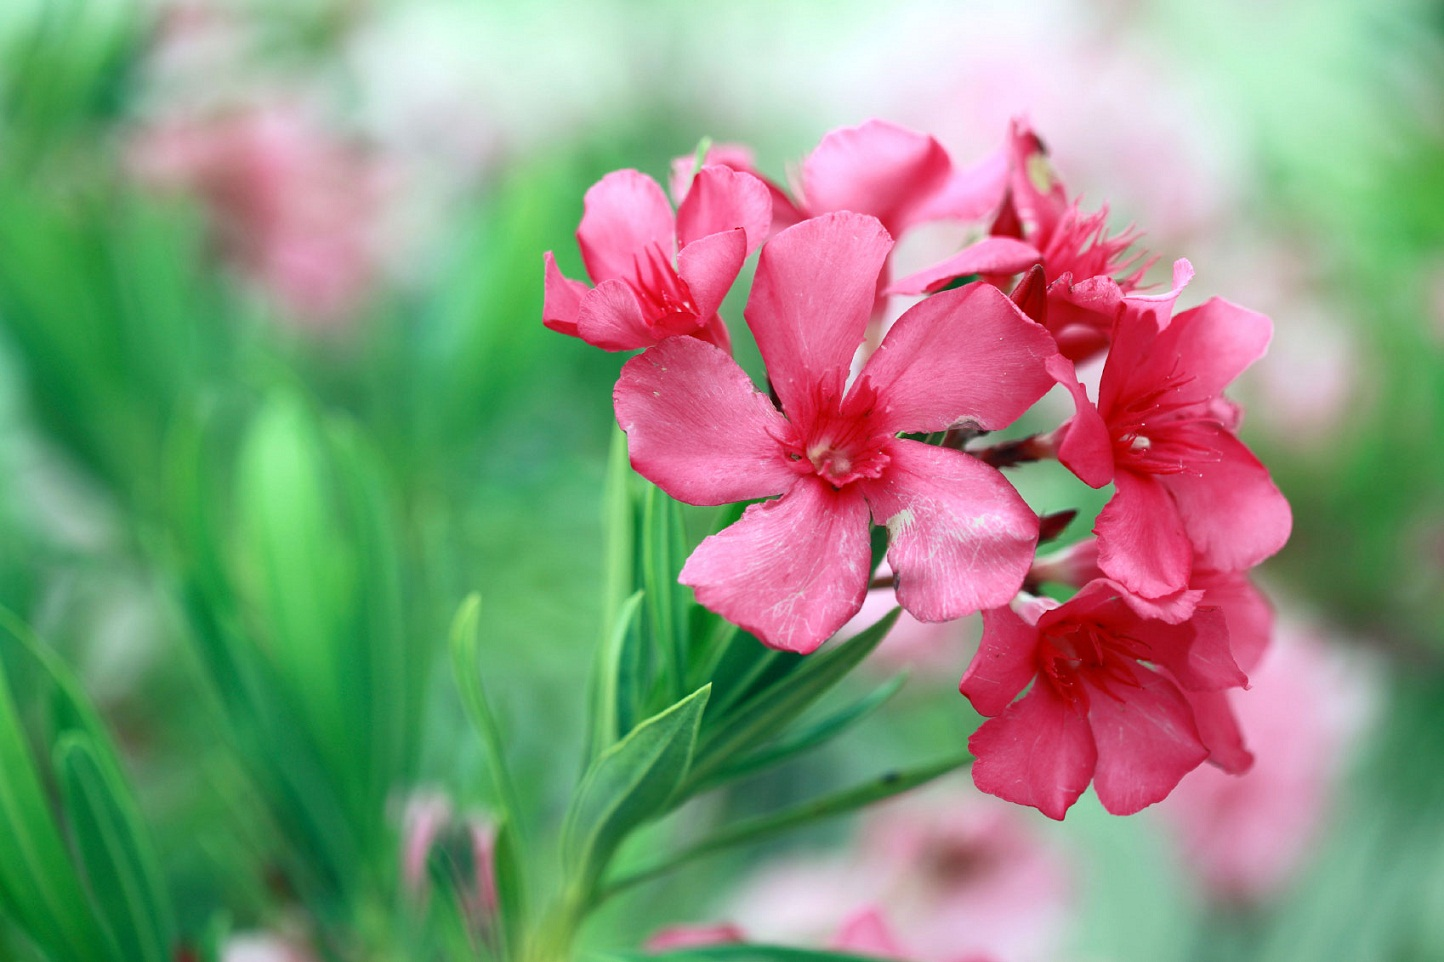 Flower names in hindi and english list of flowers oleander kaner nerium oleander izmirmasajfo